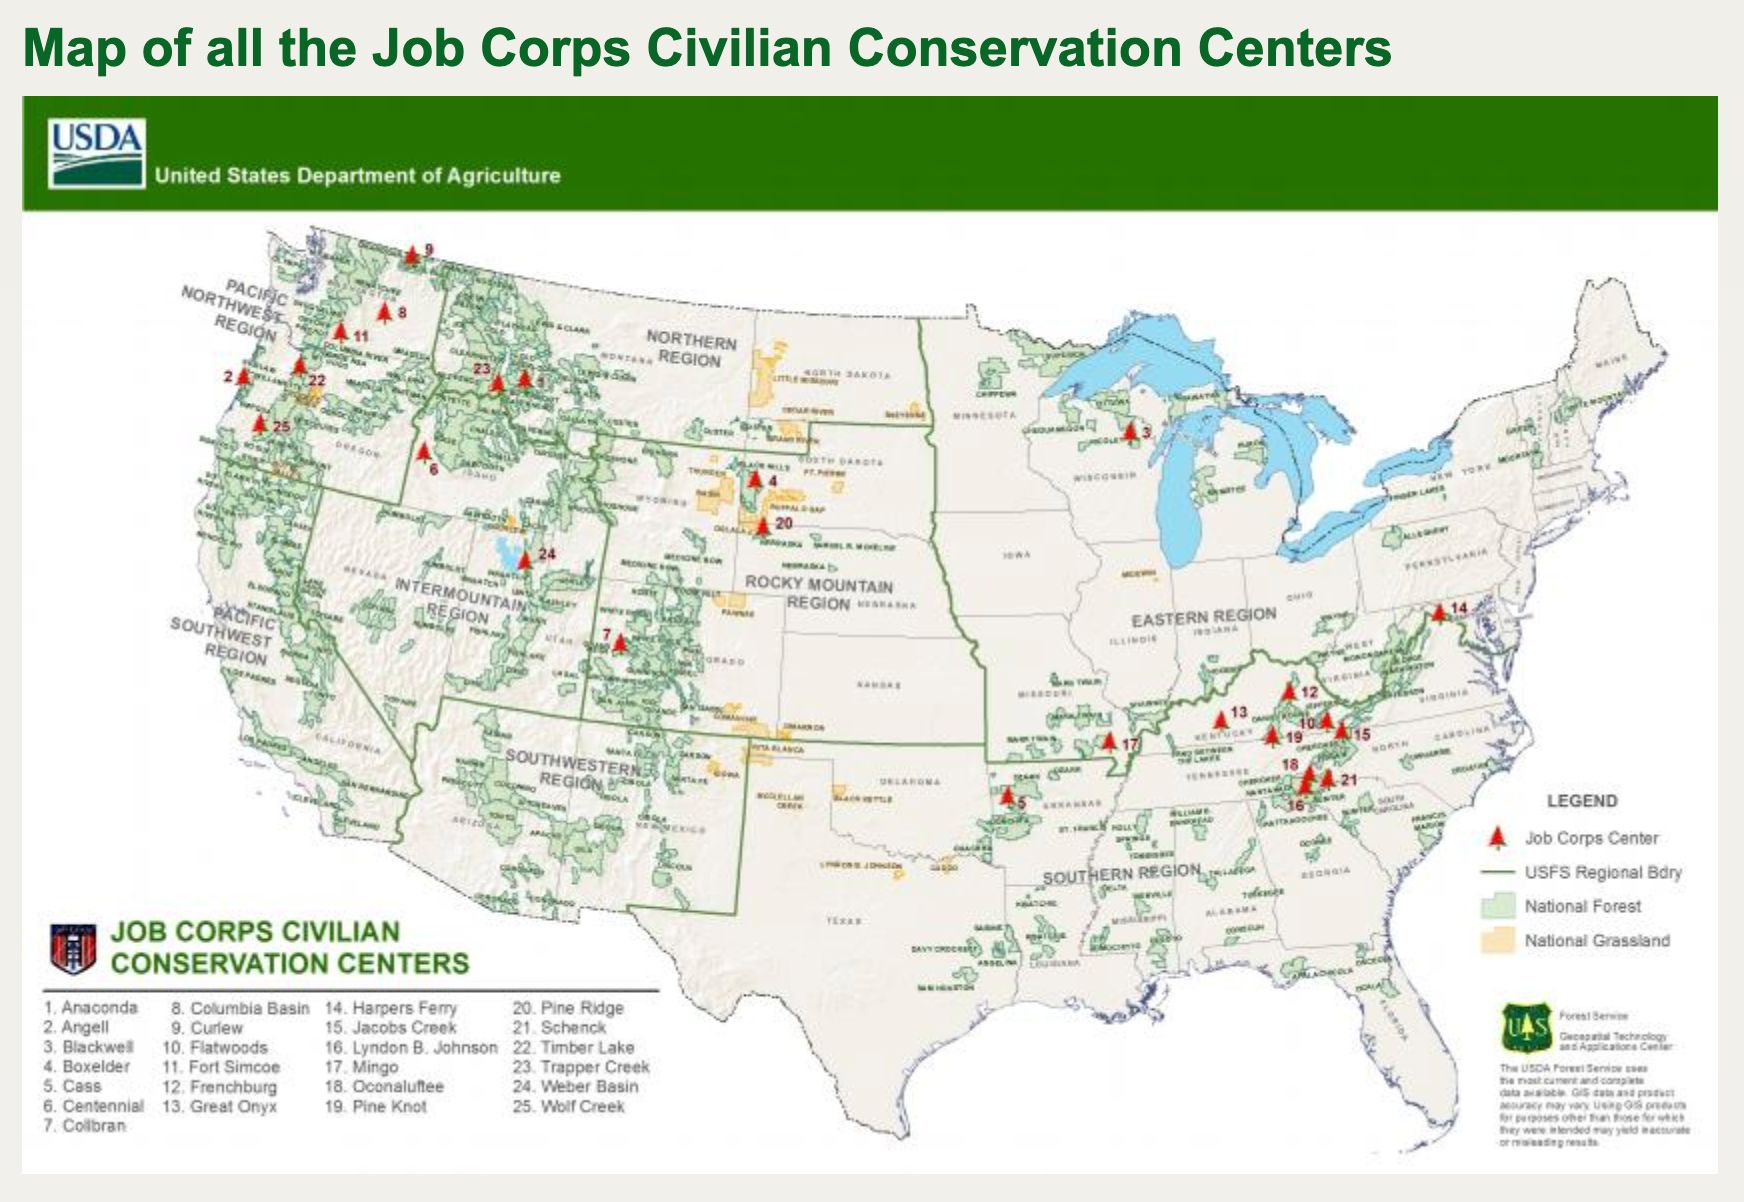 Locations of the Job Corps Civilian Conservation Centers slated to be closed.